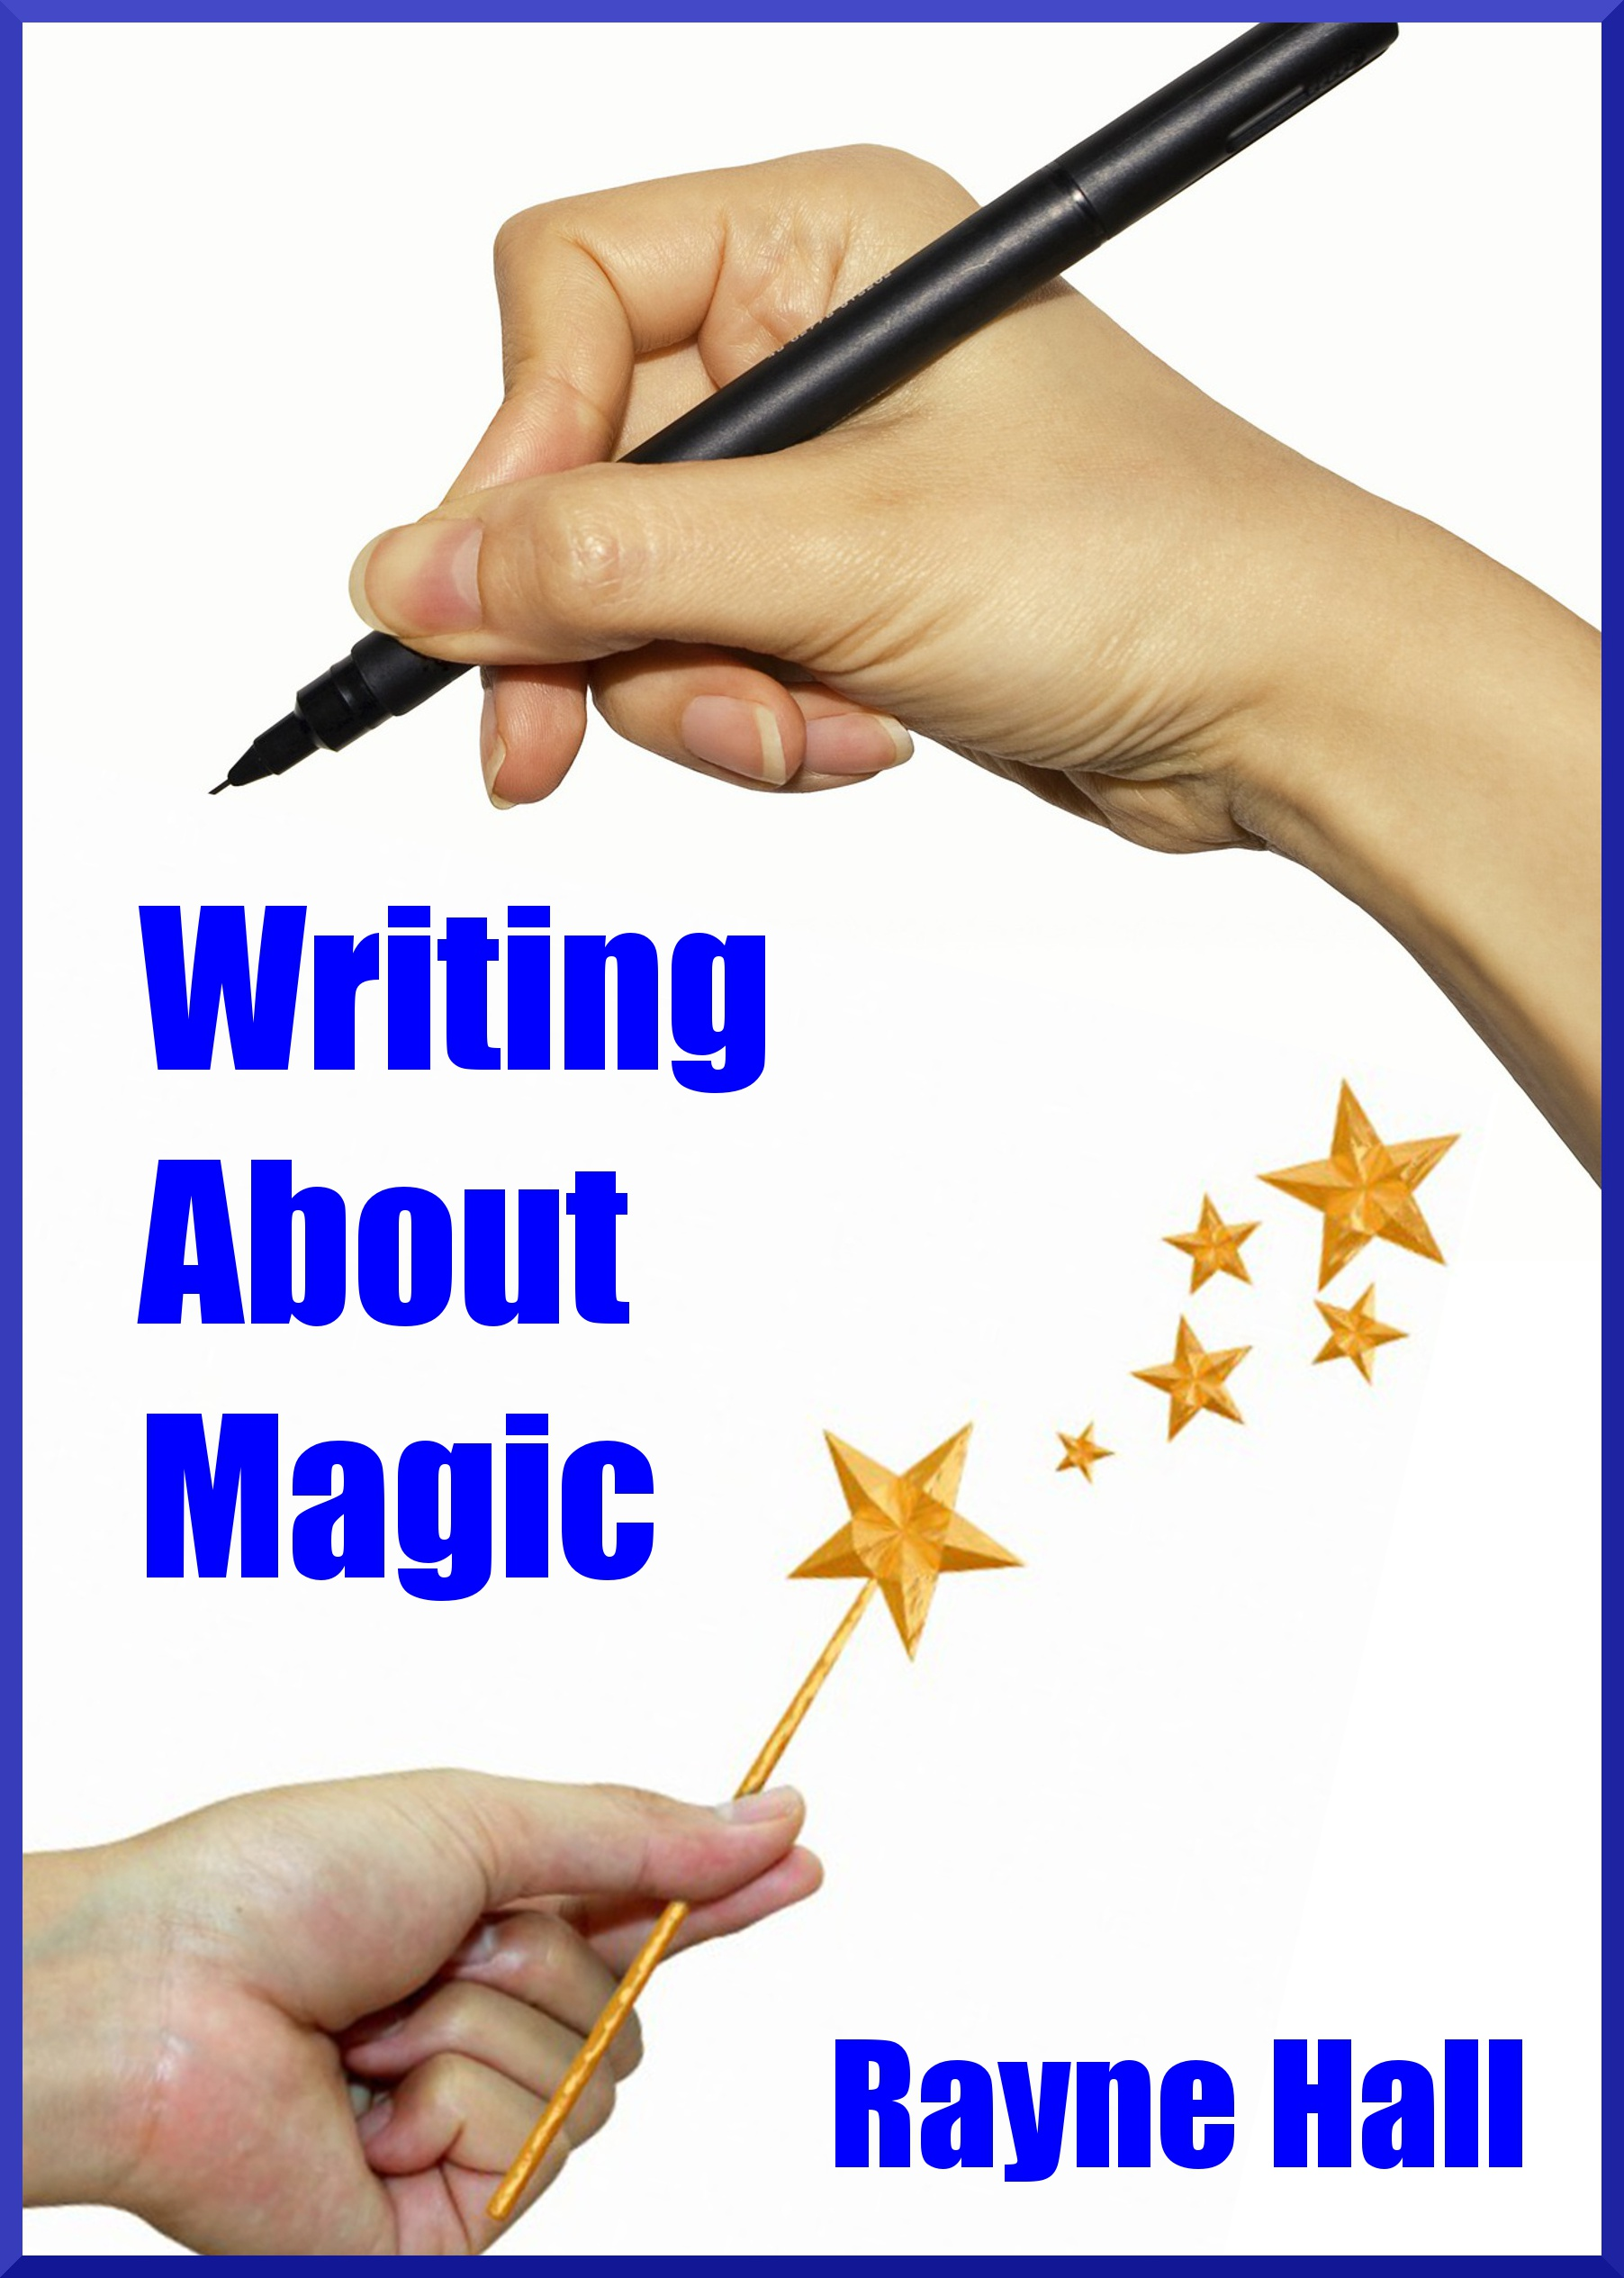 Writing About Magic